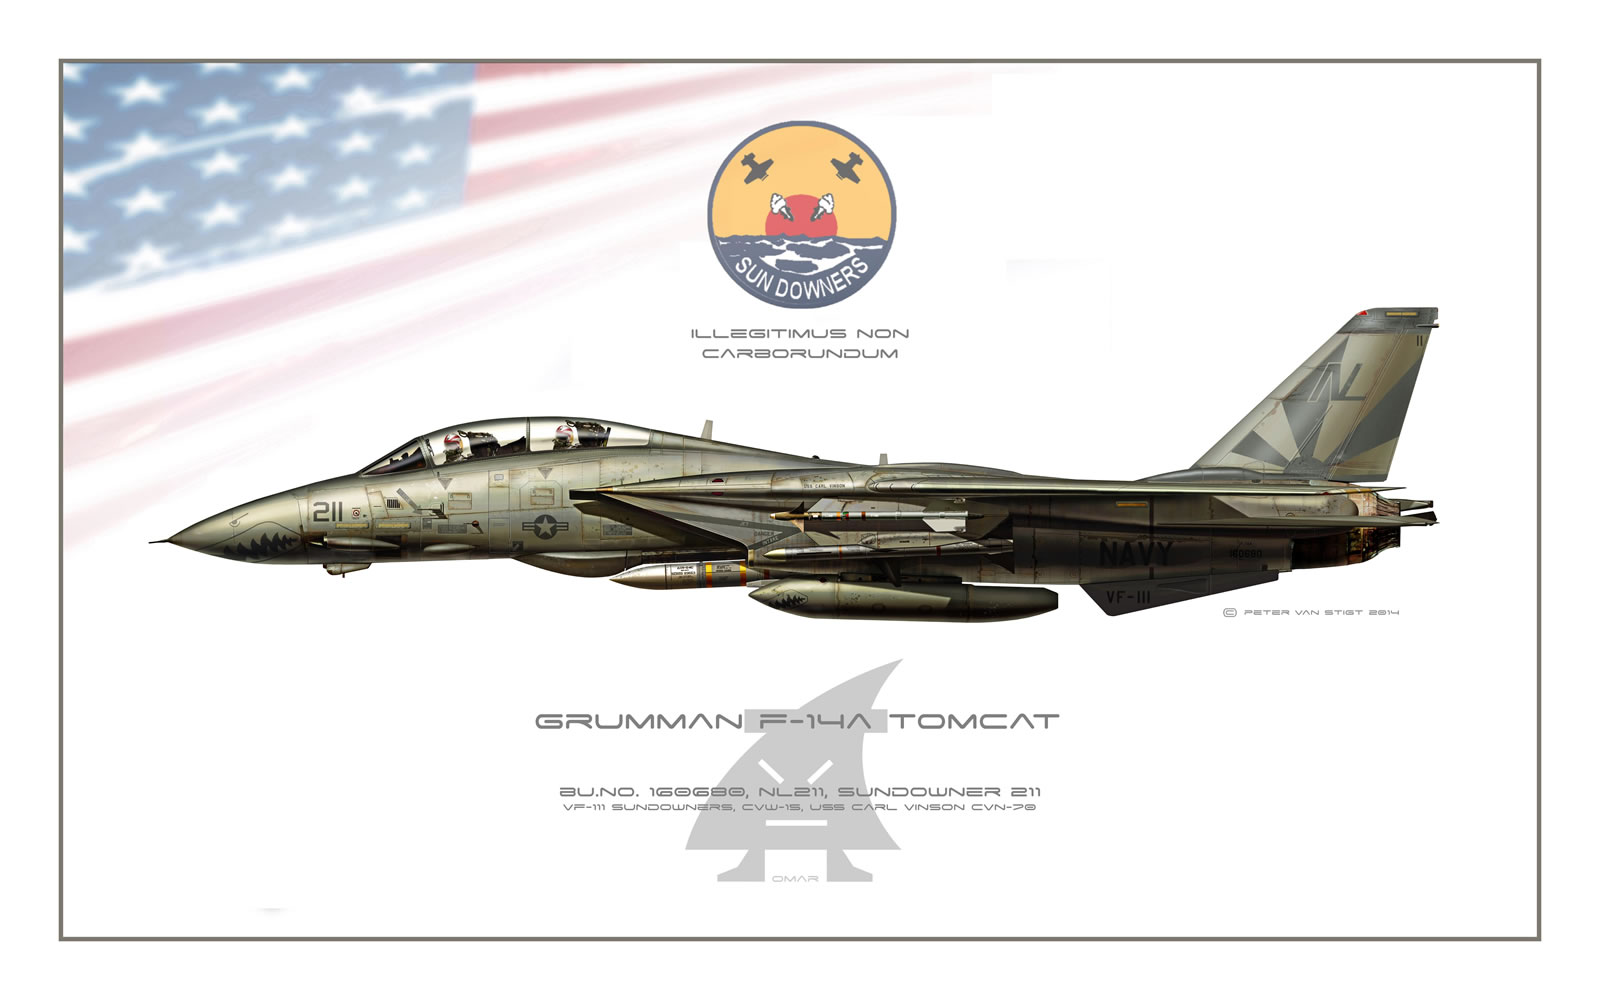 VF-111 Sundowners Low-viz F-14A Tomcat Profile